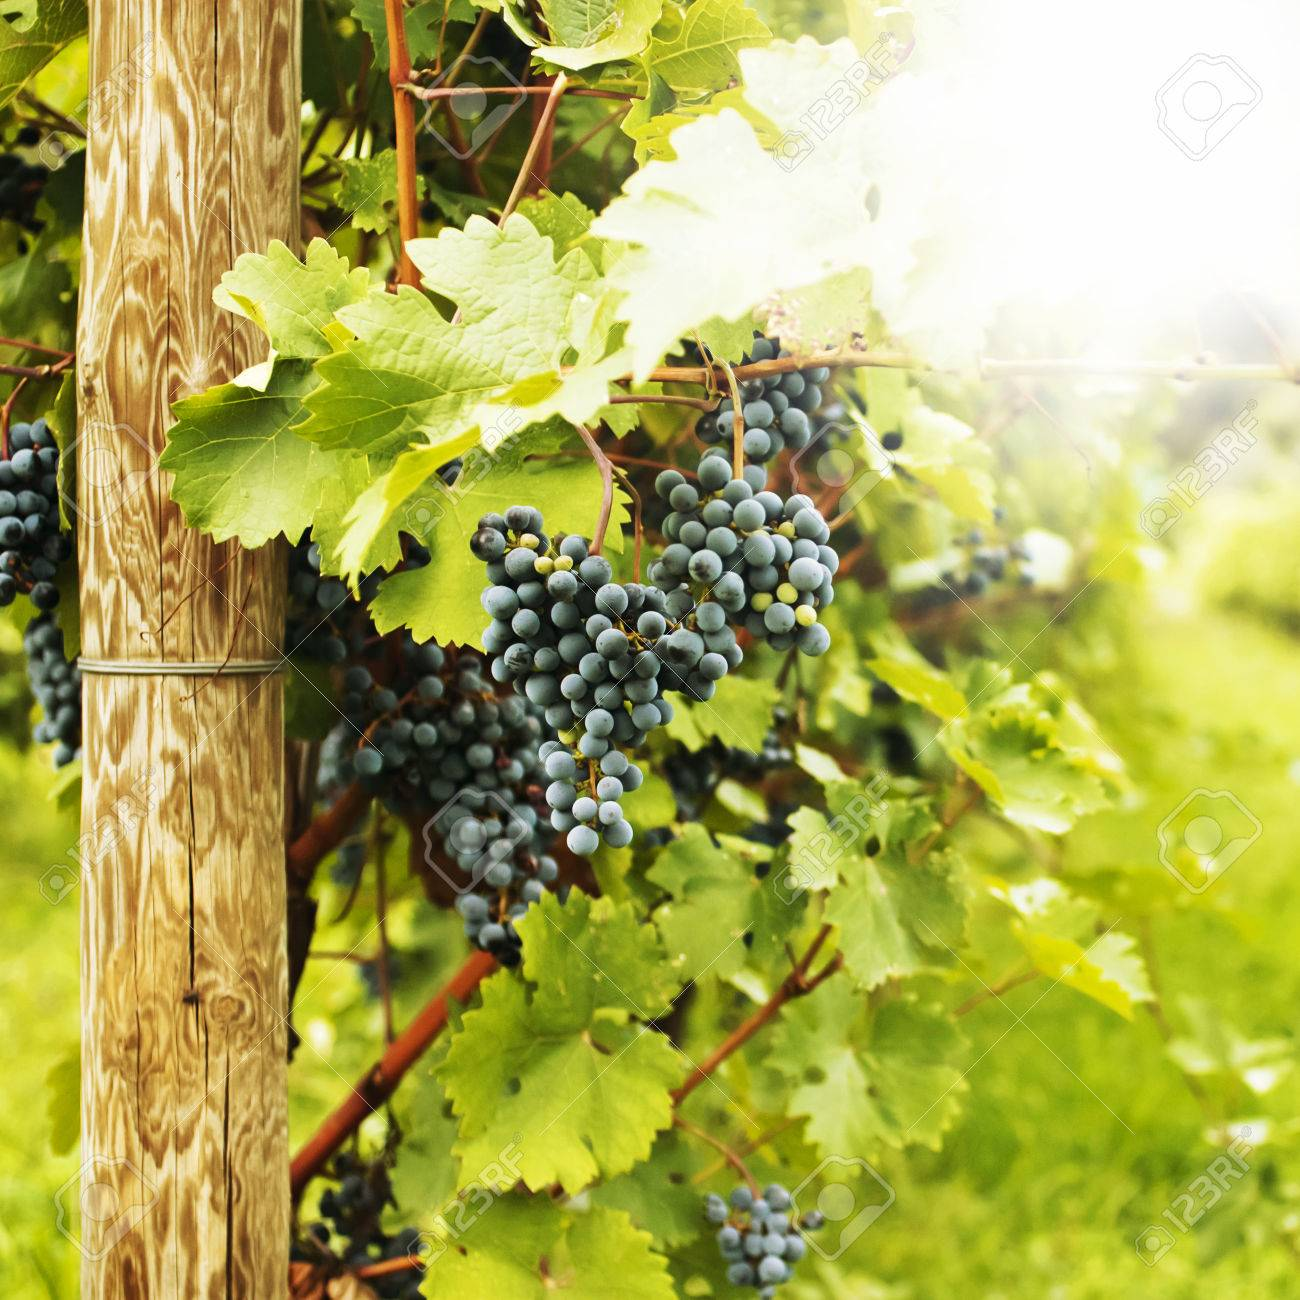 Several bunches of ripe grapes on the vine selective focus - 24901802